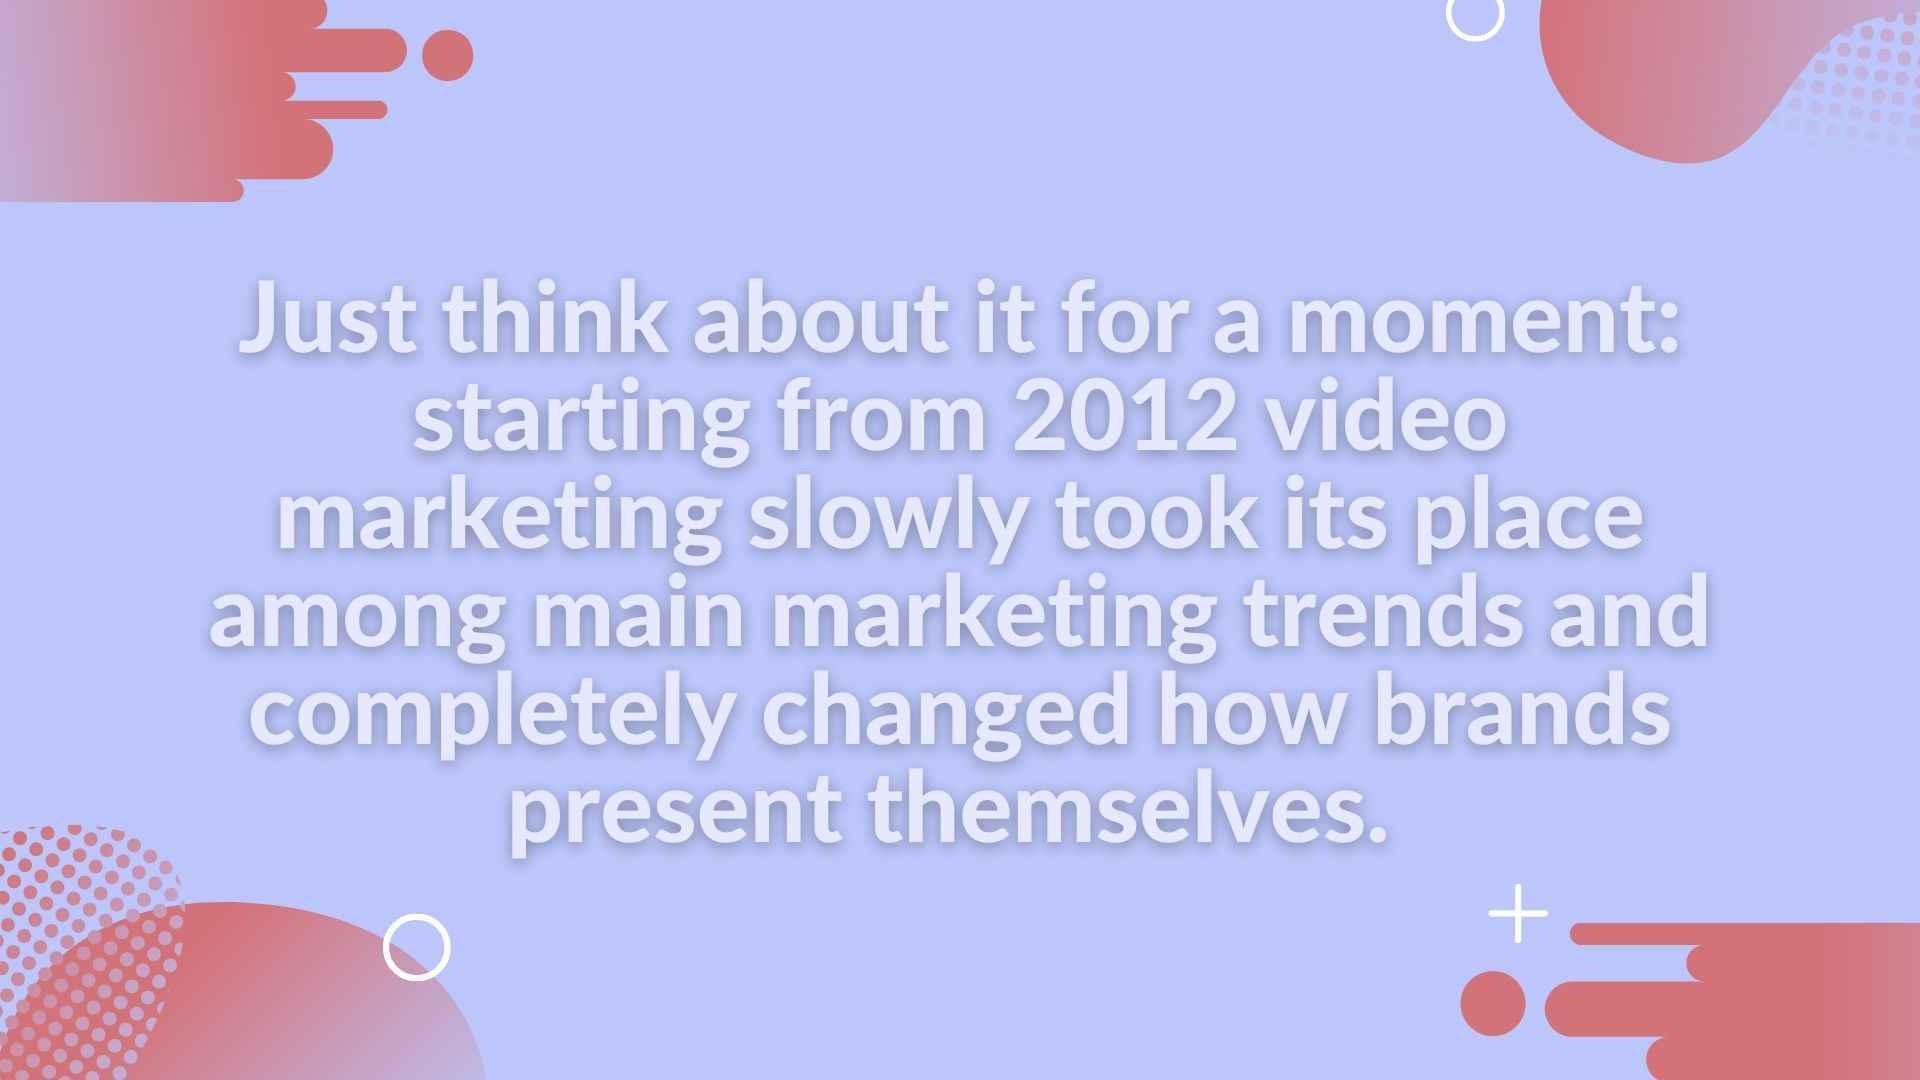 Starting from 2012 video marketing slowly took its place among main marketing trends and completely changed how brands present themselves